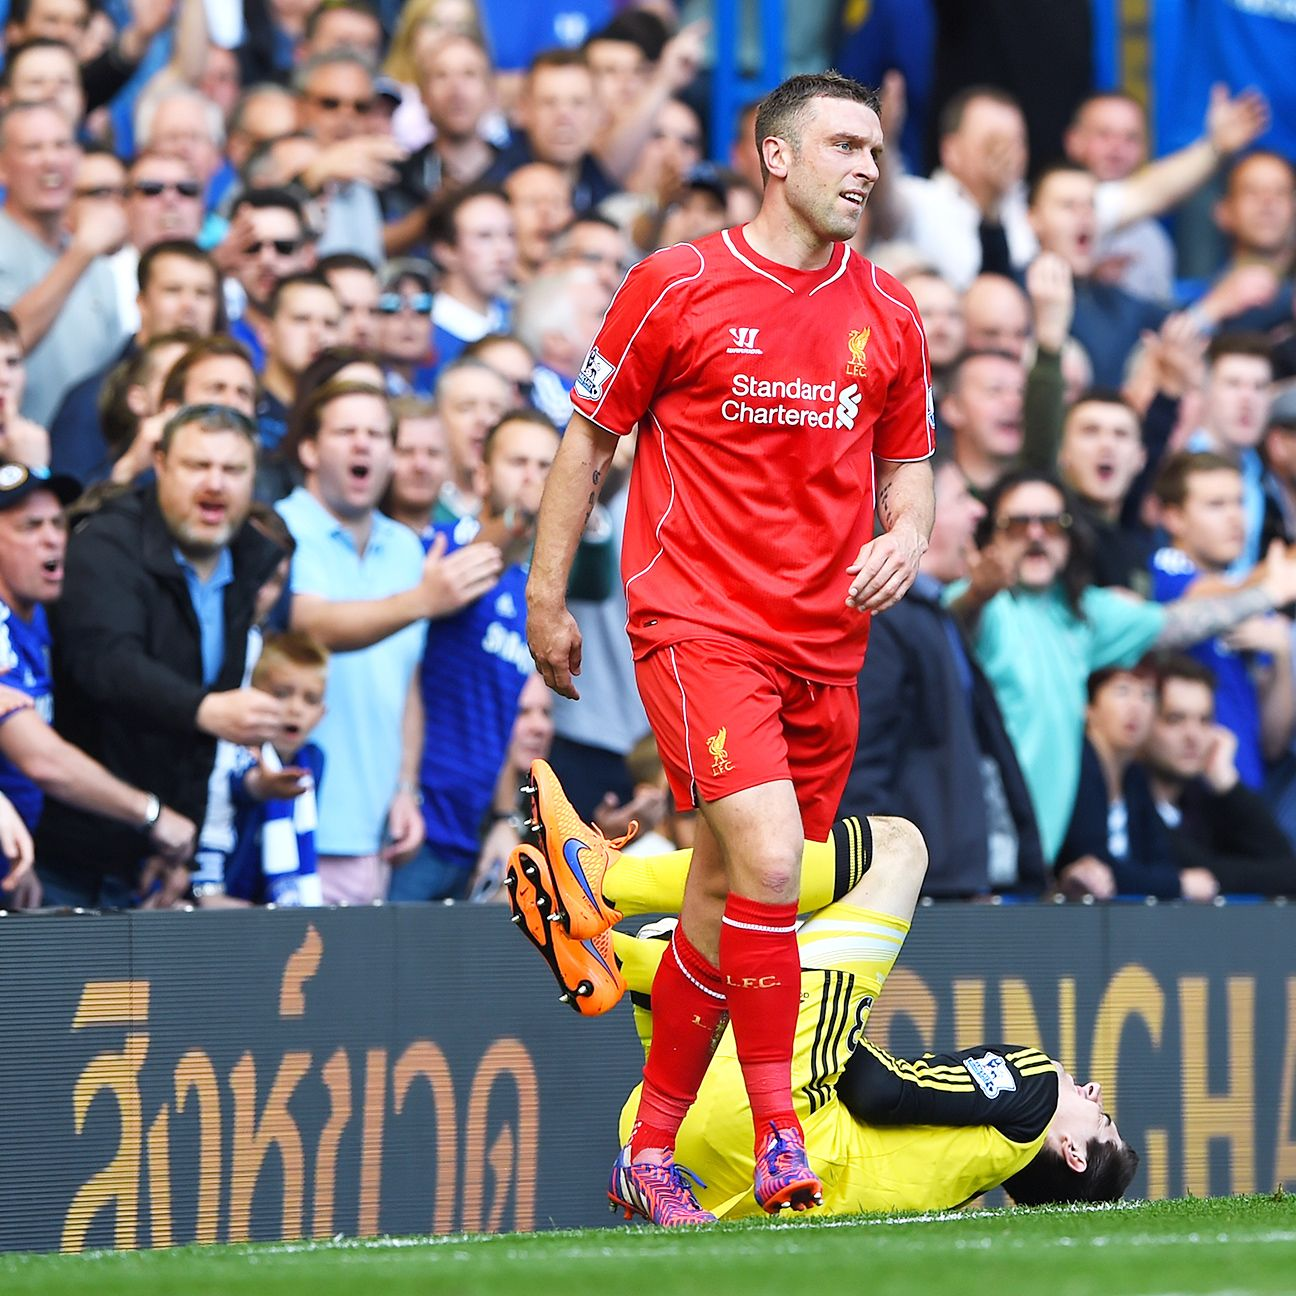 Rickie Lambert scored just two goals in 18 Premier League matches for Liverpool in 2014-15.